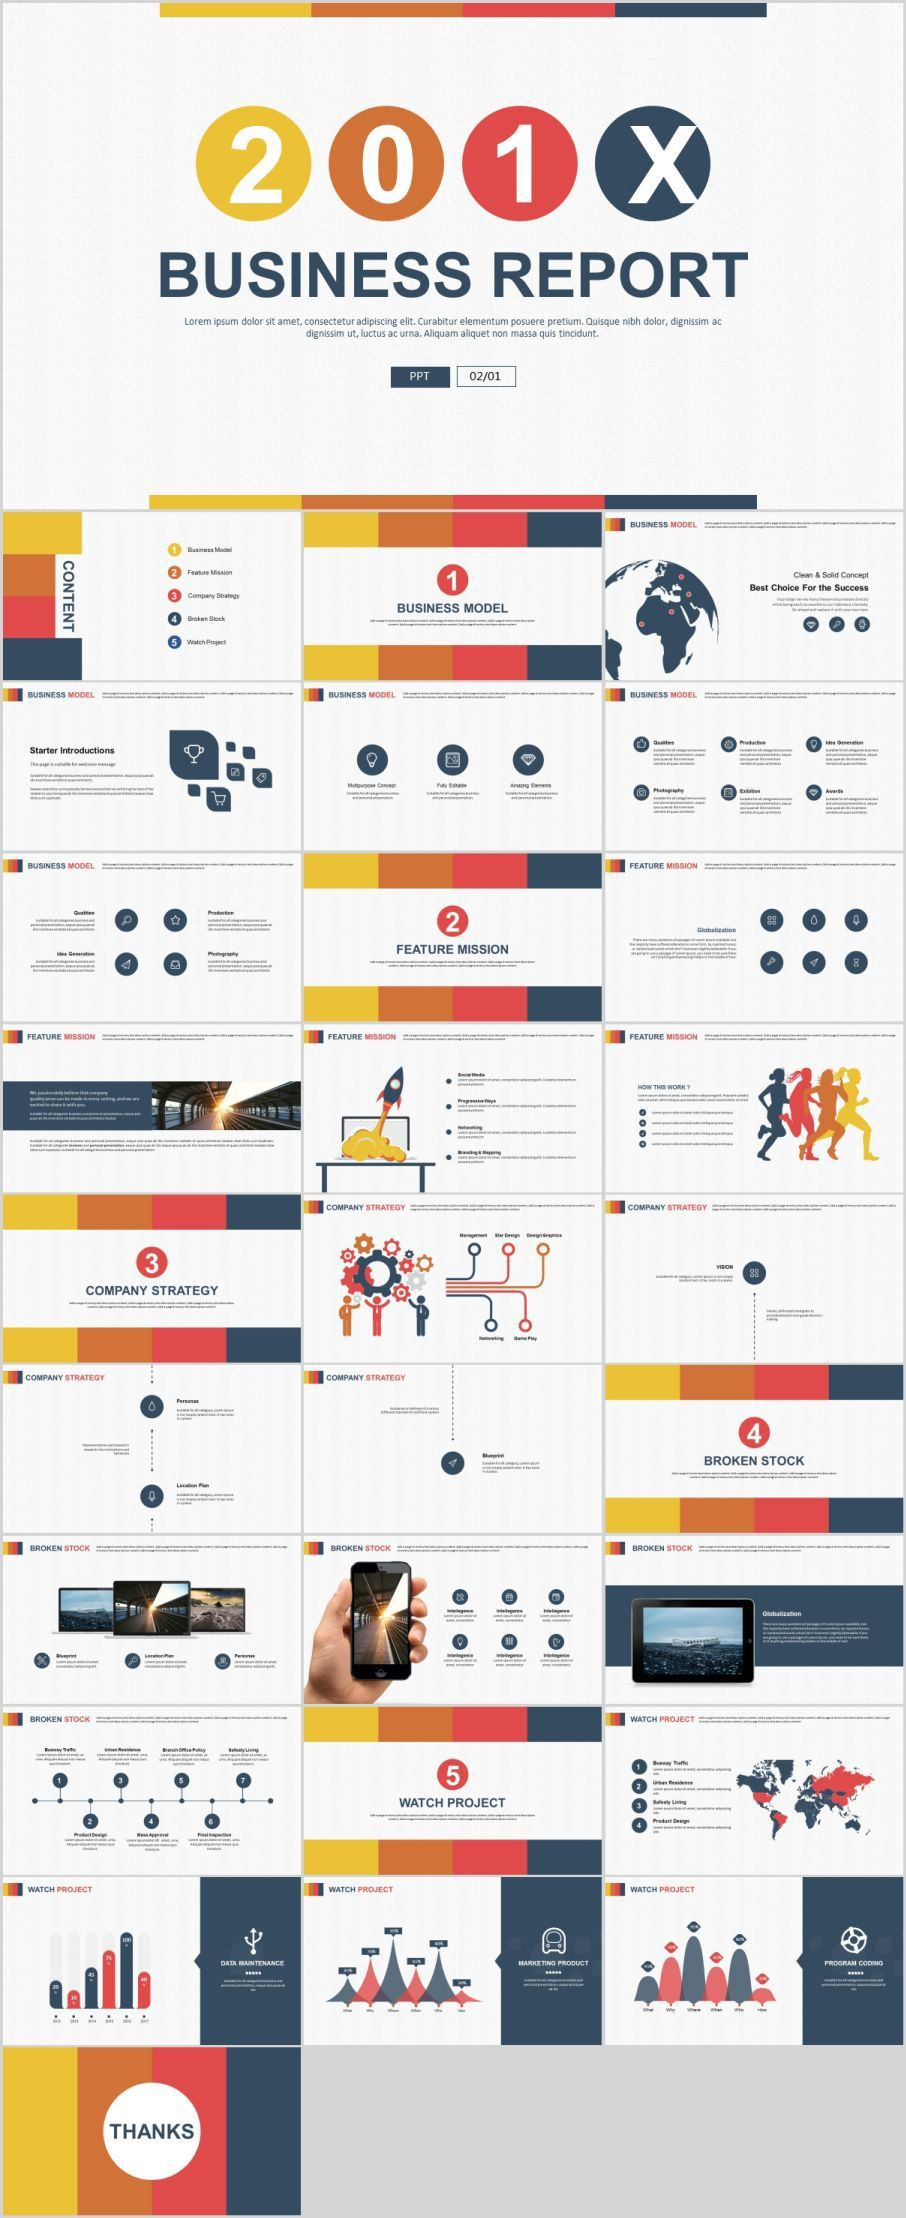 003 Remarkable Timeline Template Presentationgo Idea Full